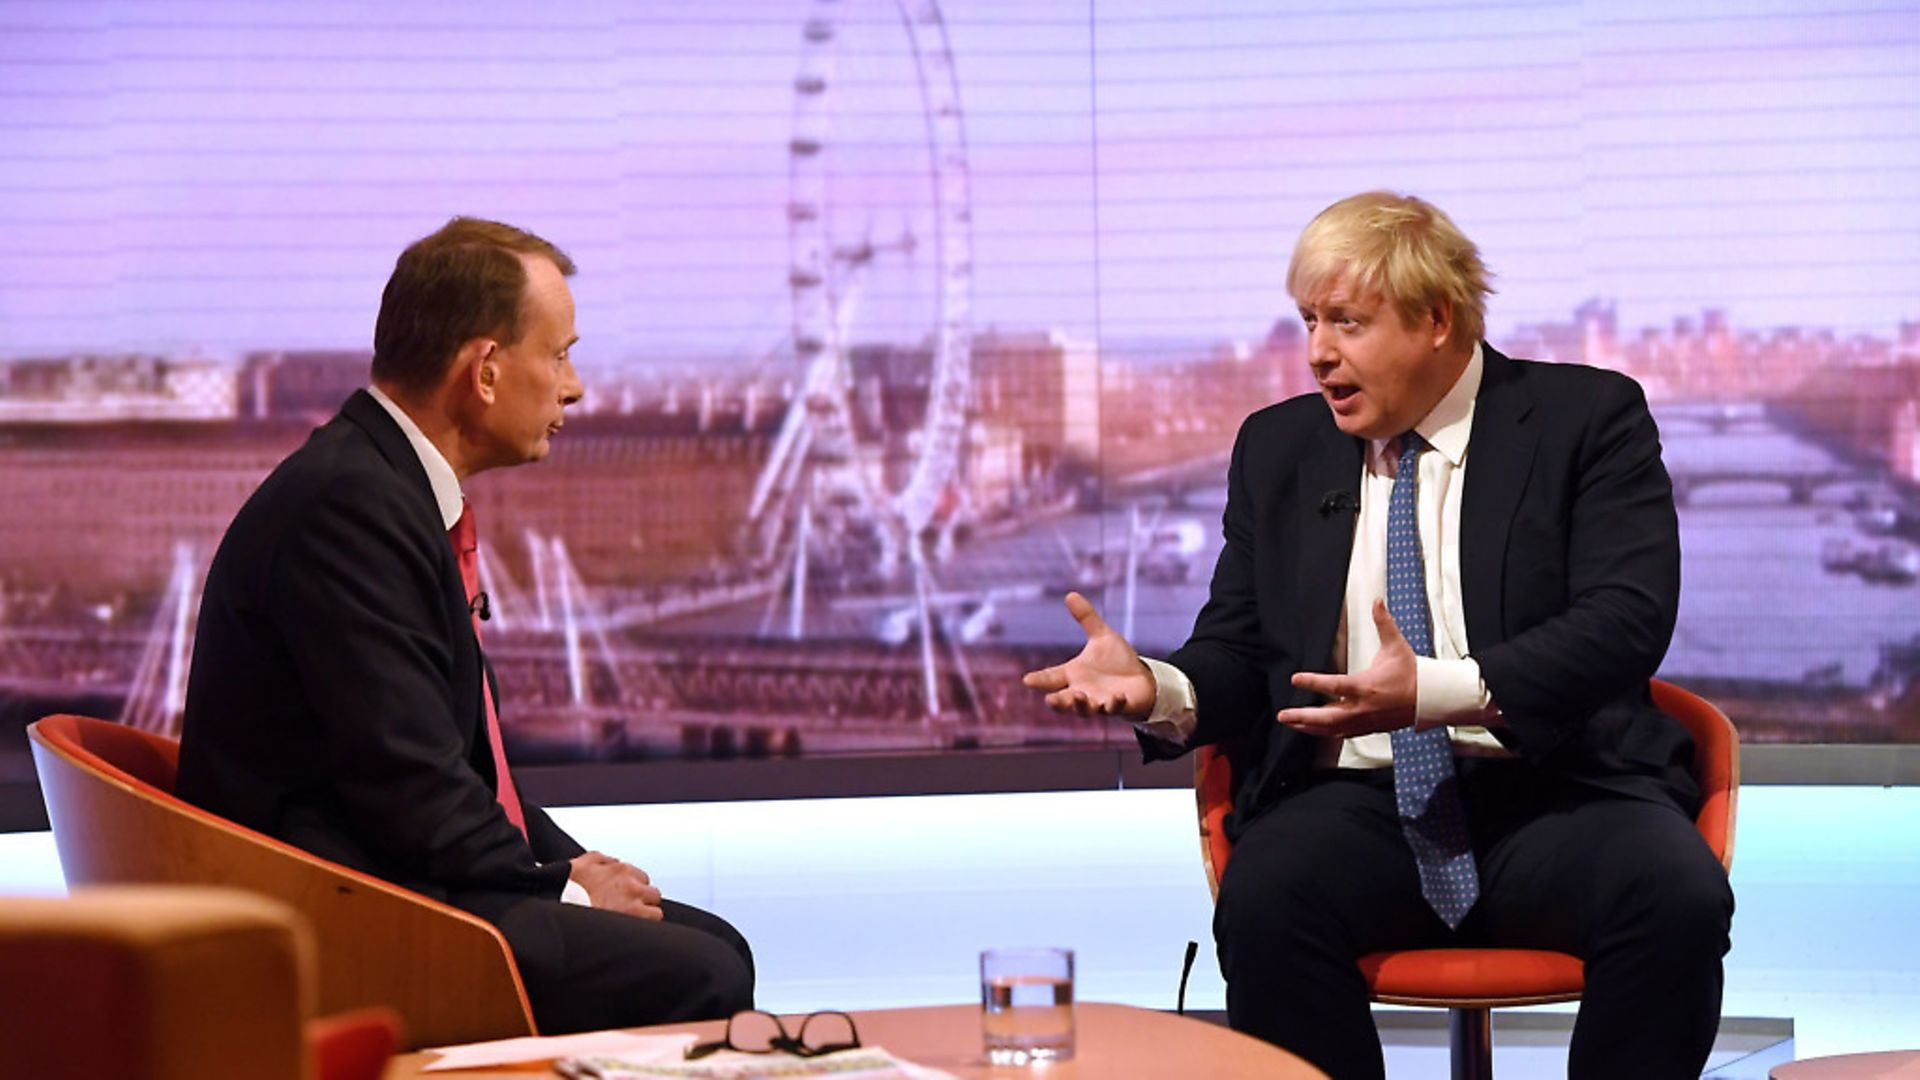 Andrew Marr (left) and Foreign Secretary Boris Johnson during filming for  The Andrew Marr Show. Photograph: Victoria Jones/PA. - Credit: PA Archive/PA Images